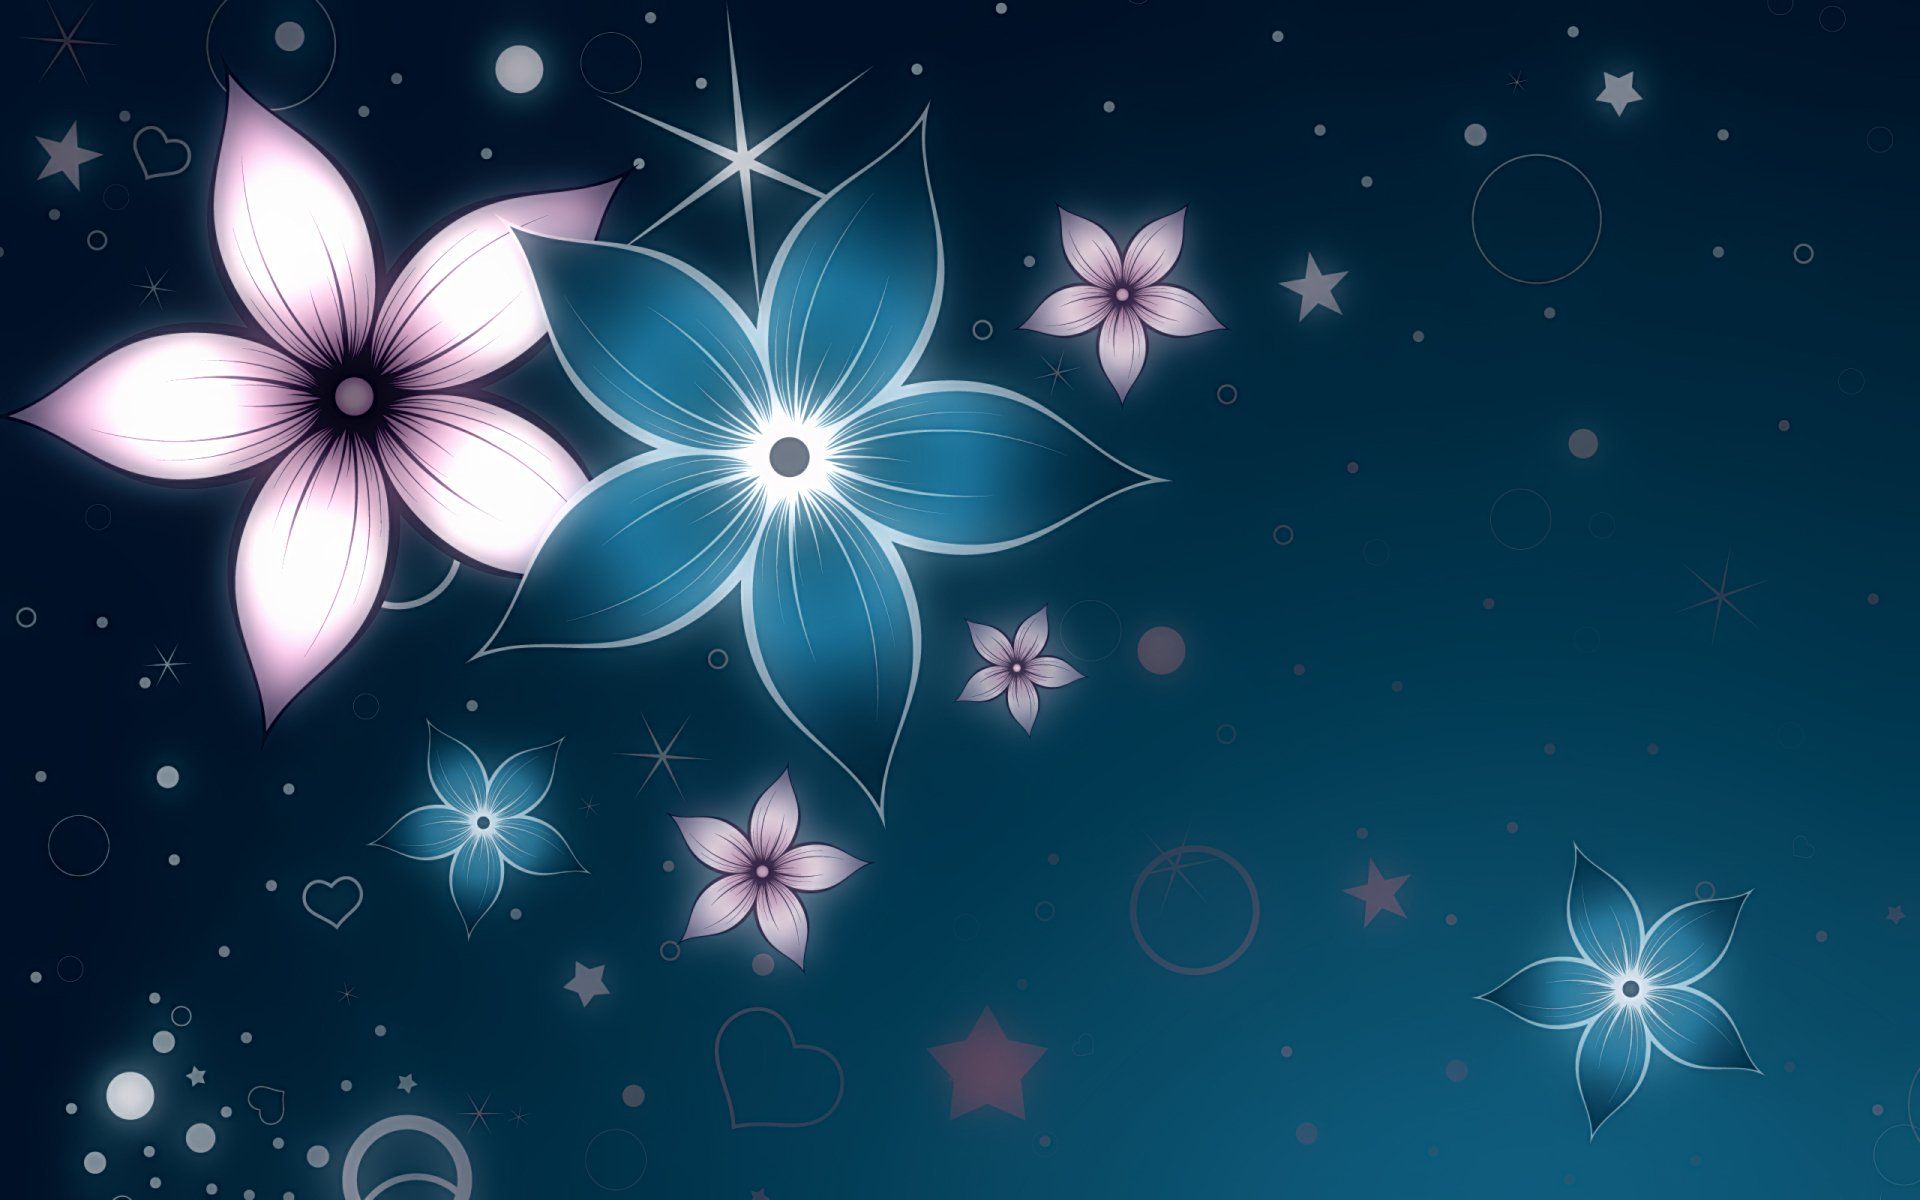 Artistic - Flower  Cloud Wallpaper